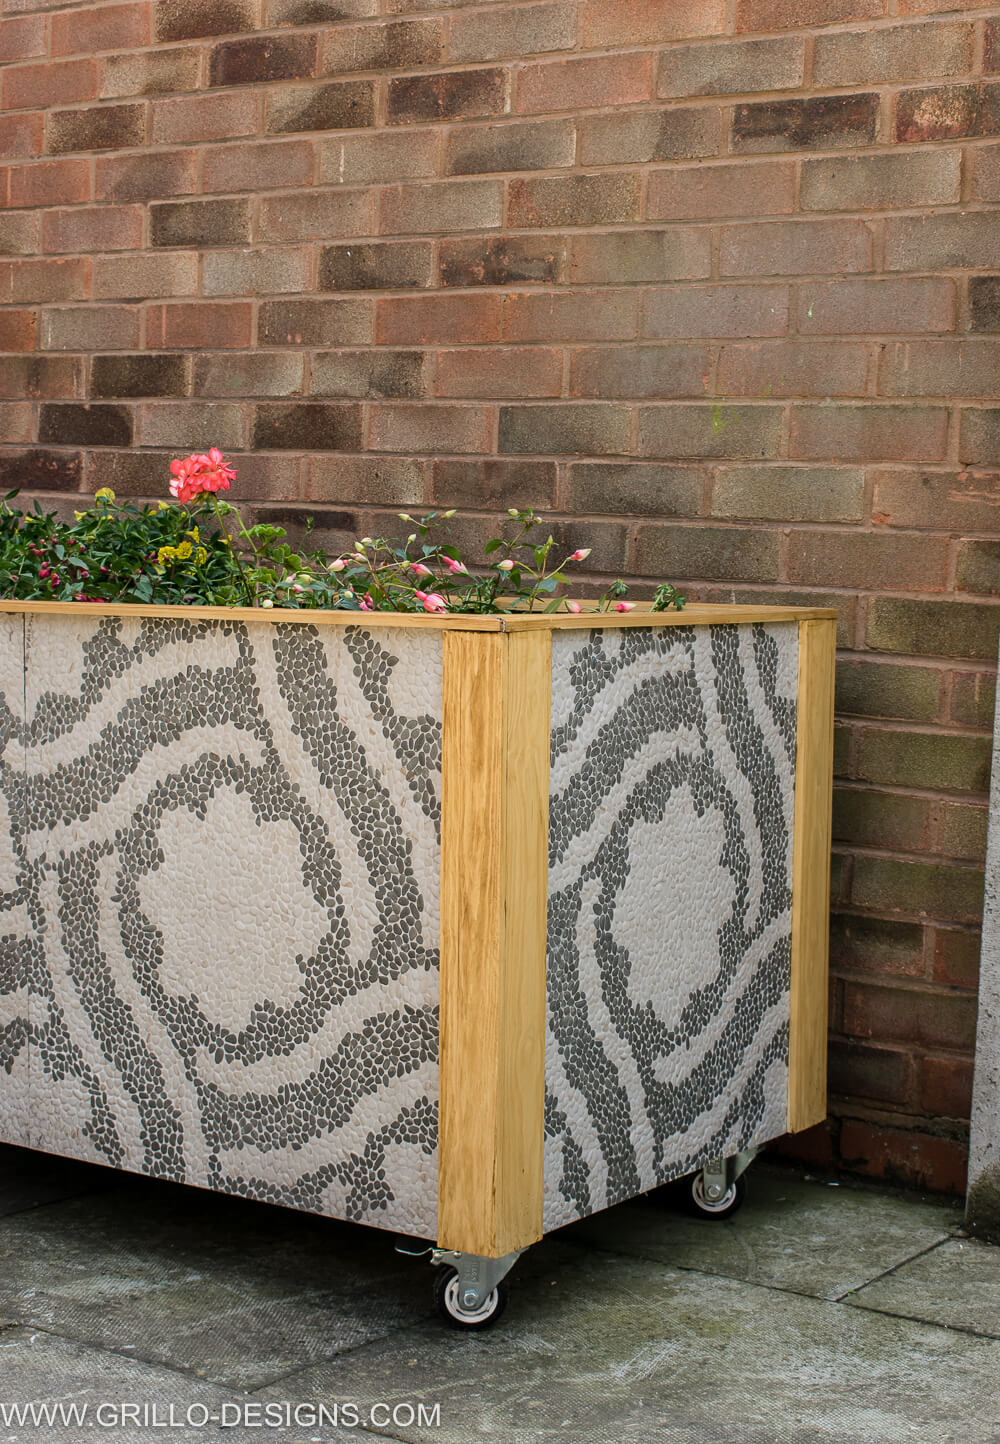 Easy Diy trough planter / grillo designs